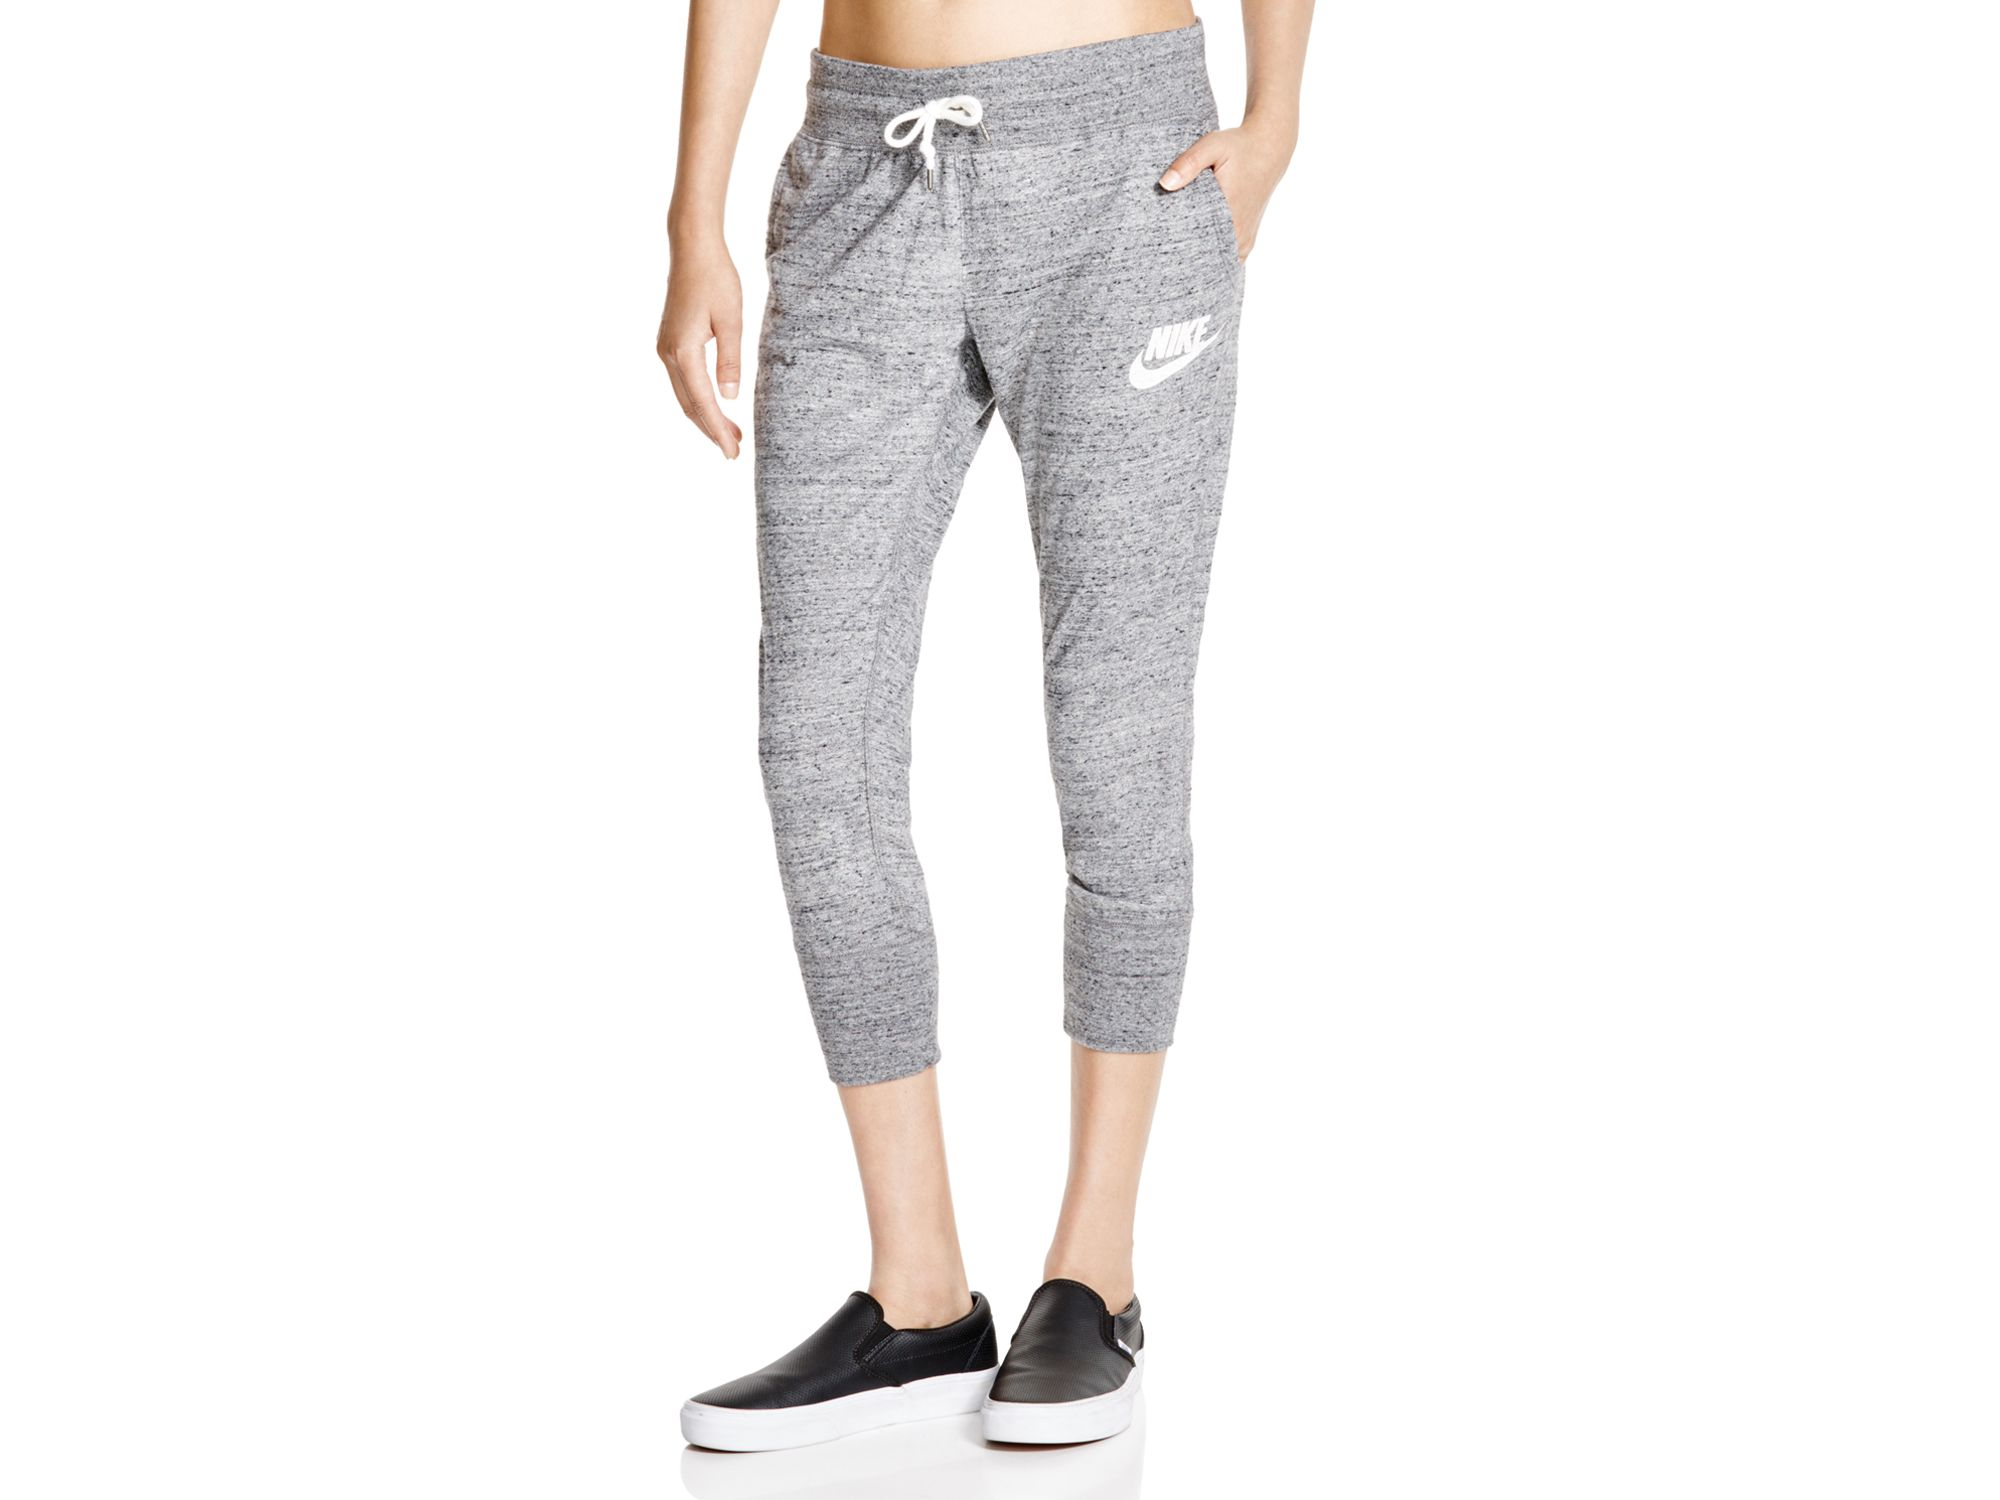 Lyst - Nike Gym Vintage Cropped Sweatpants in Gray 1ca9d0788b265